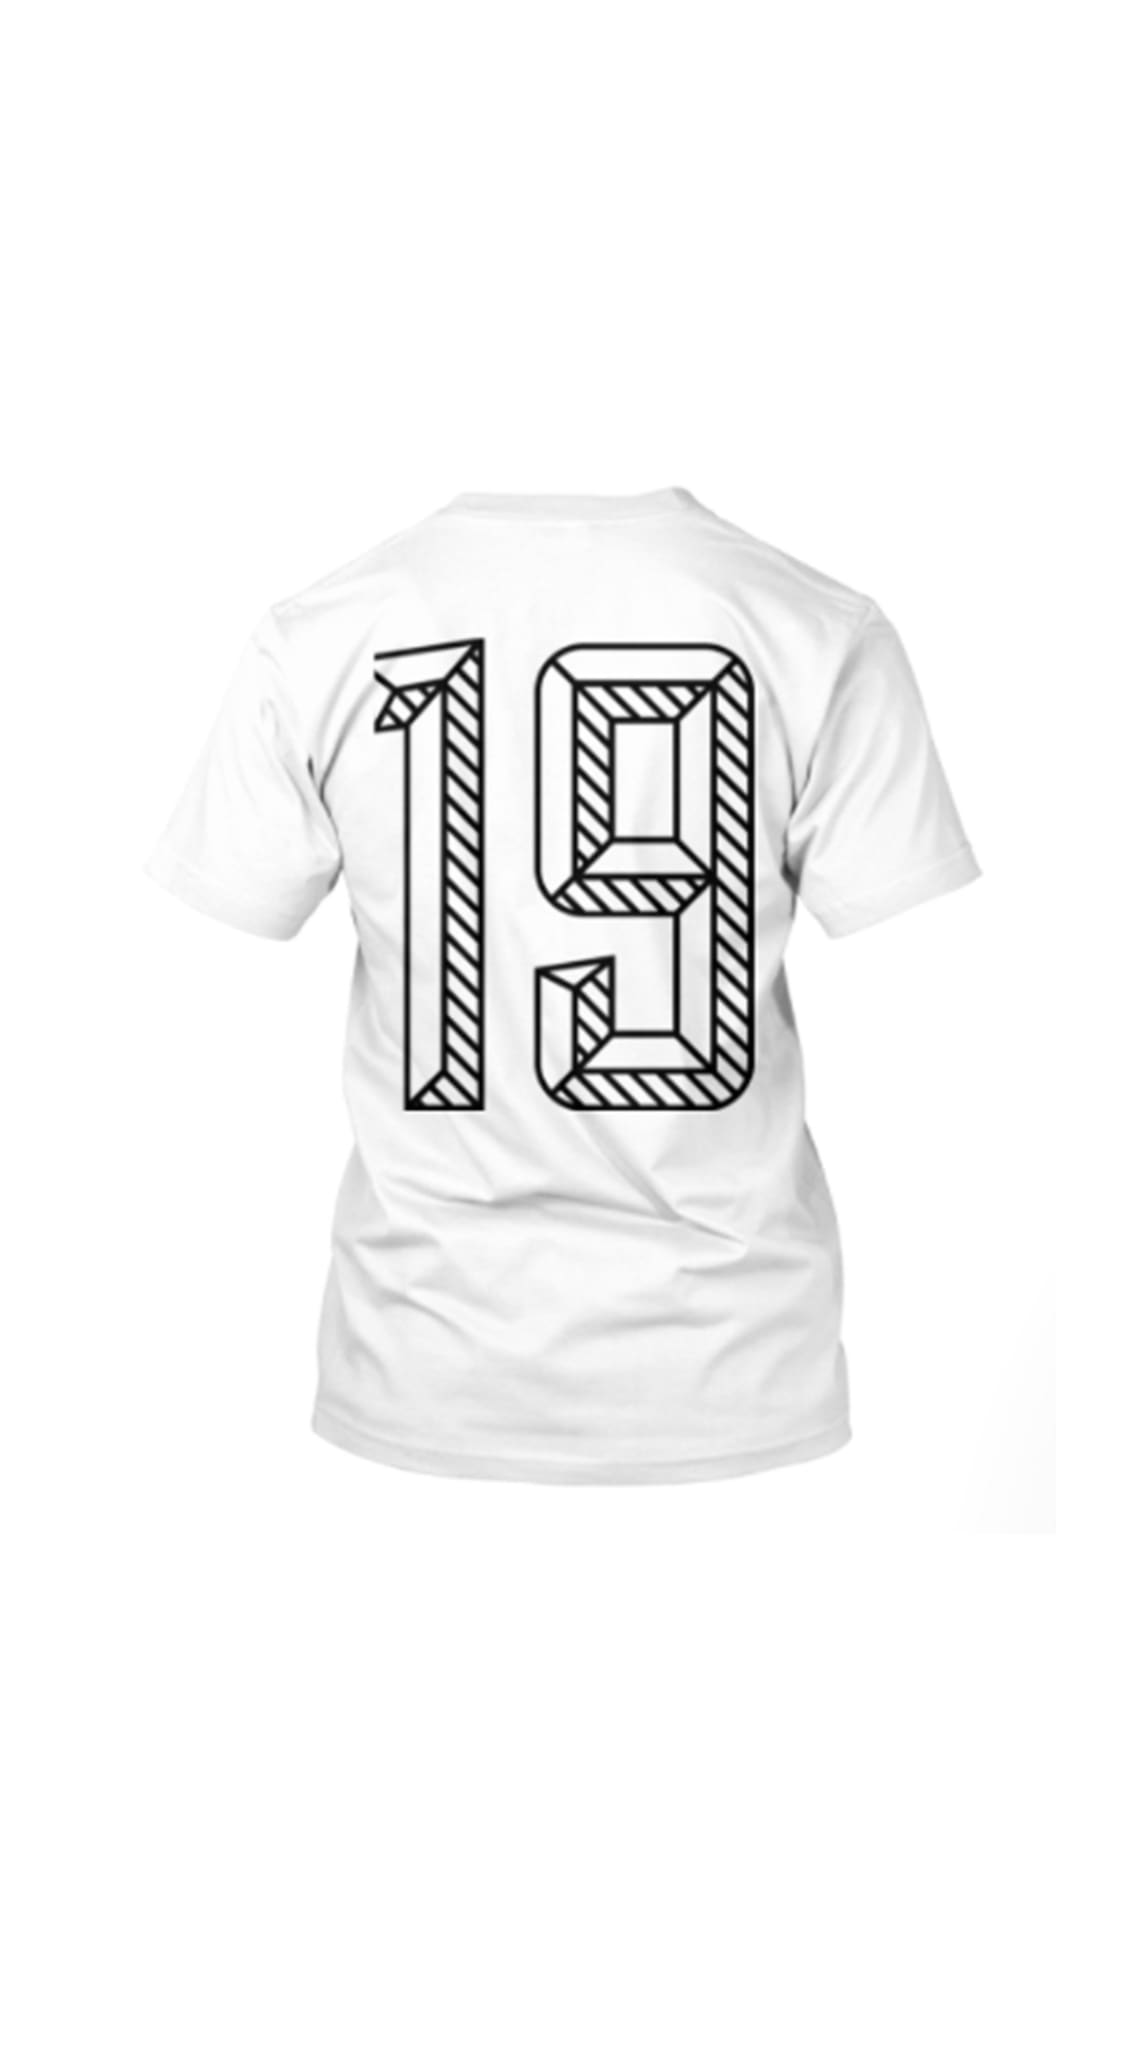 19th Amendment T-Shirt by Amanda Curtis Designs White T-Shirt back with 19th